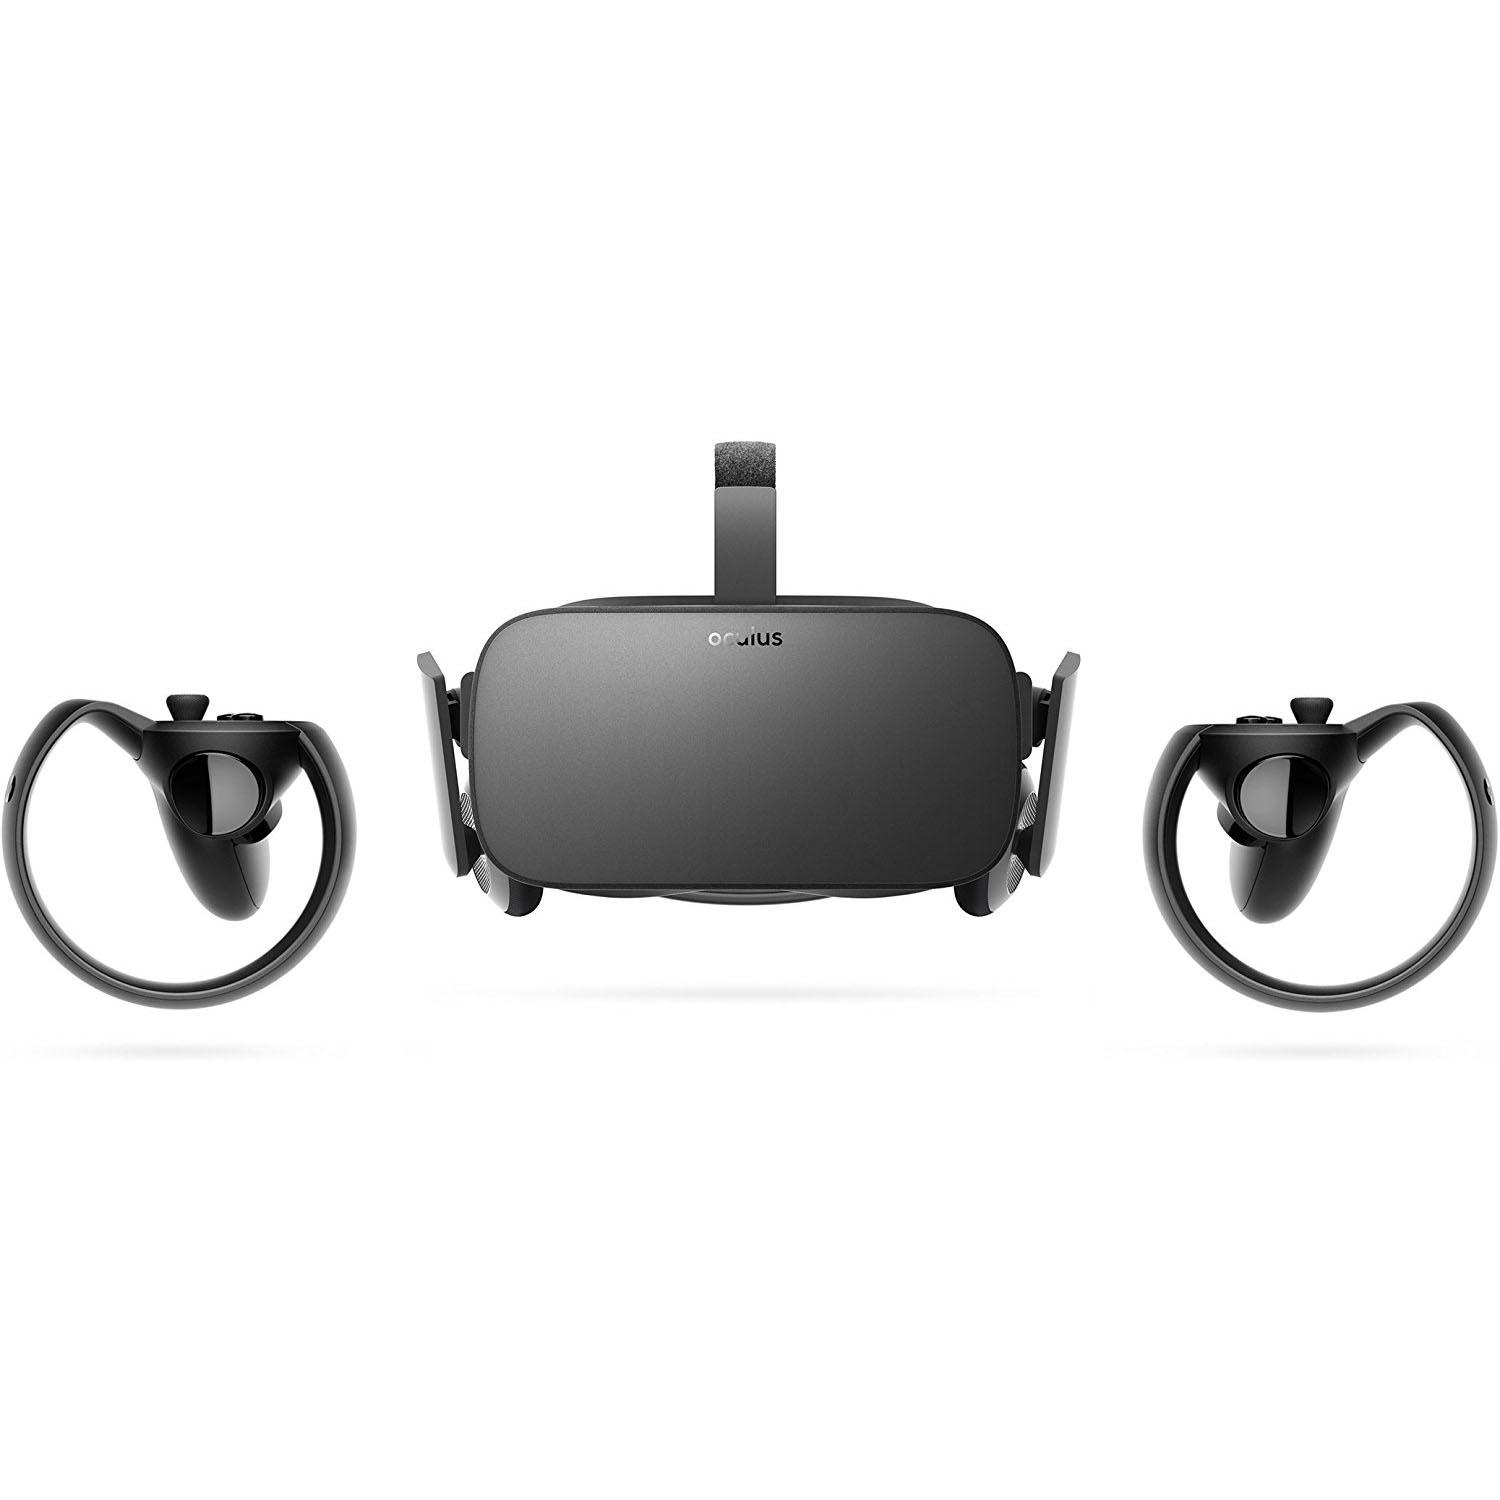 Oculus Rift headset and controller bundle gets a steep discount for a limited time